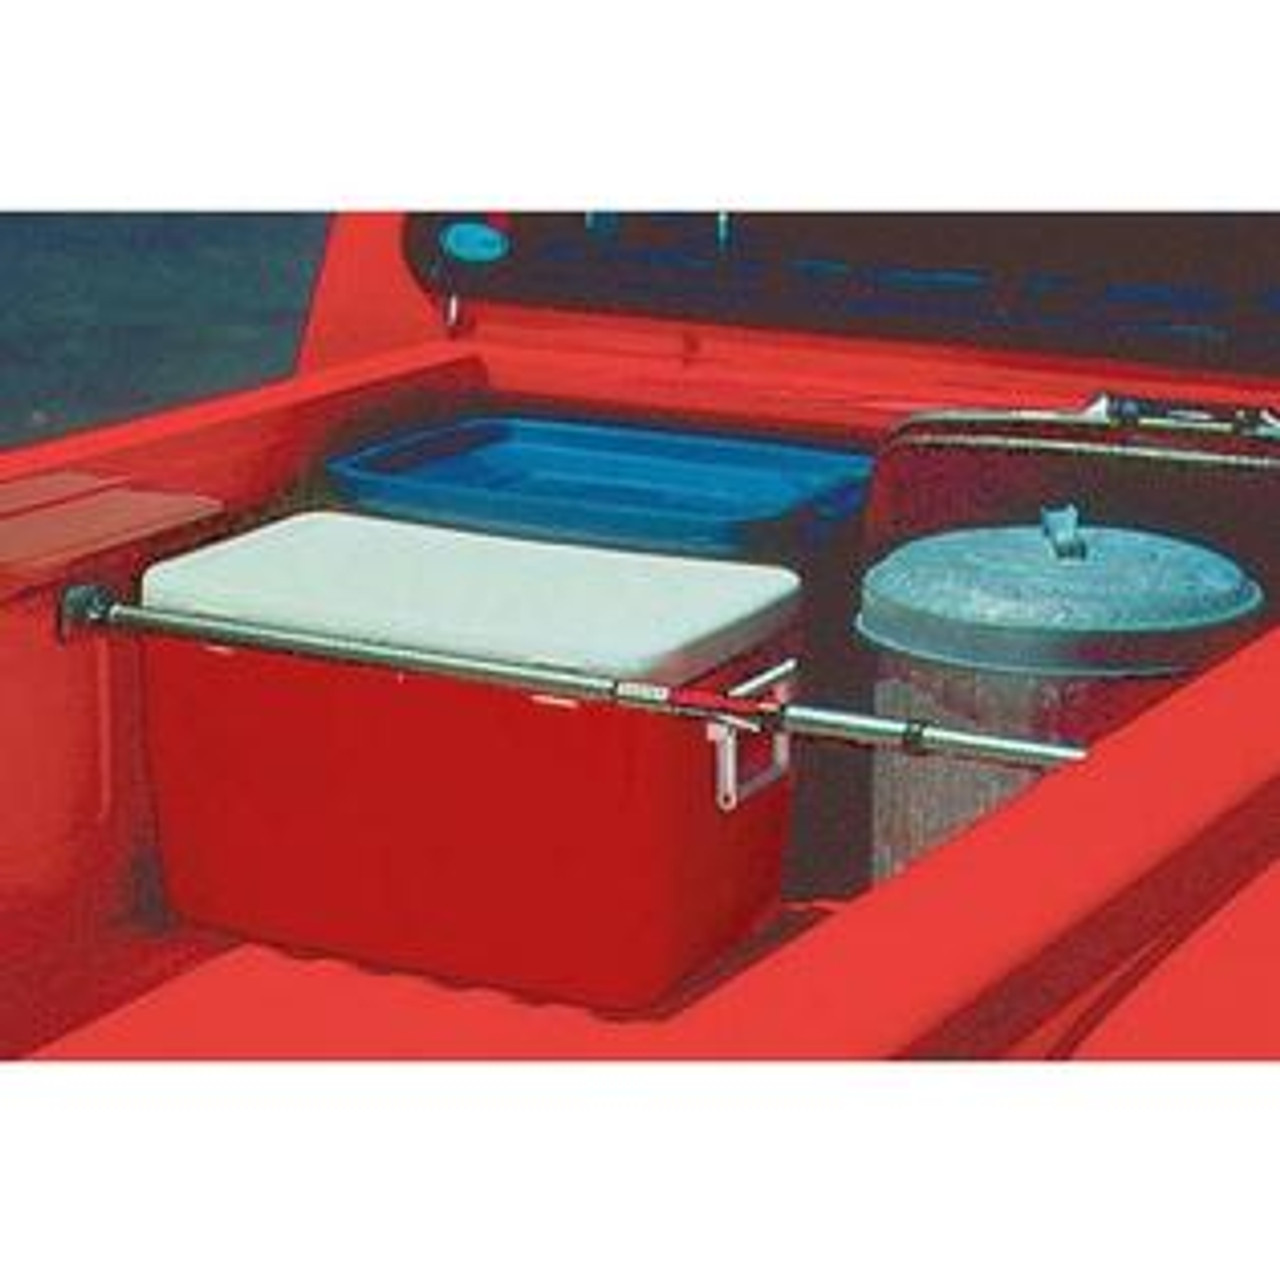 Cargo bar for organizing truck beds